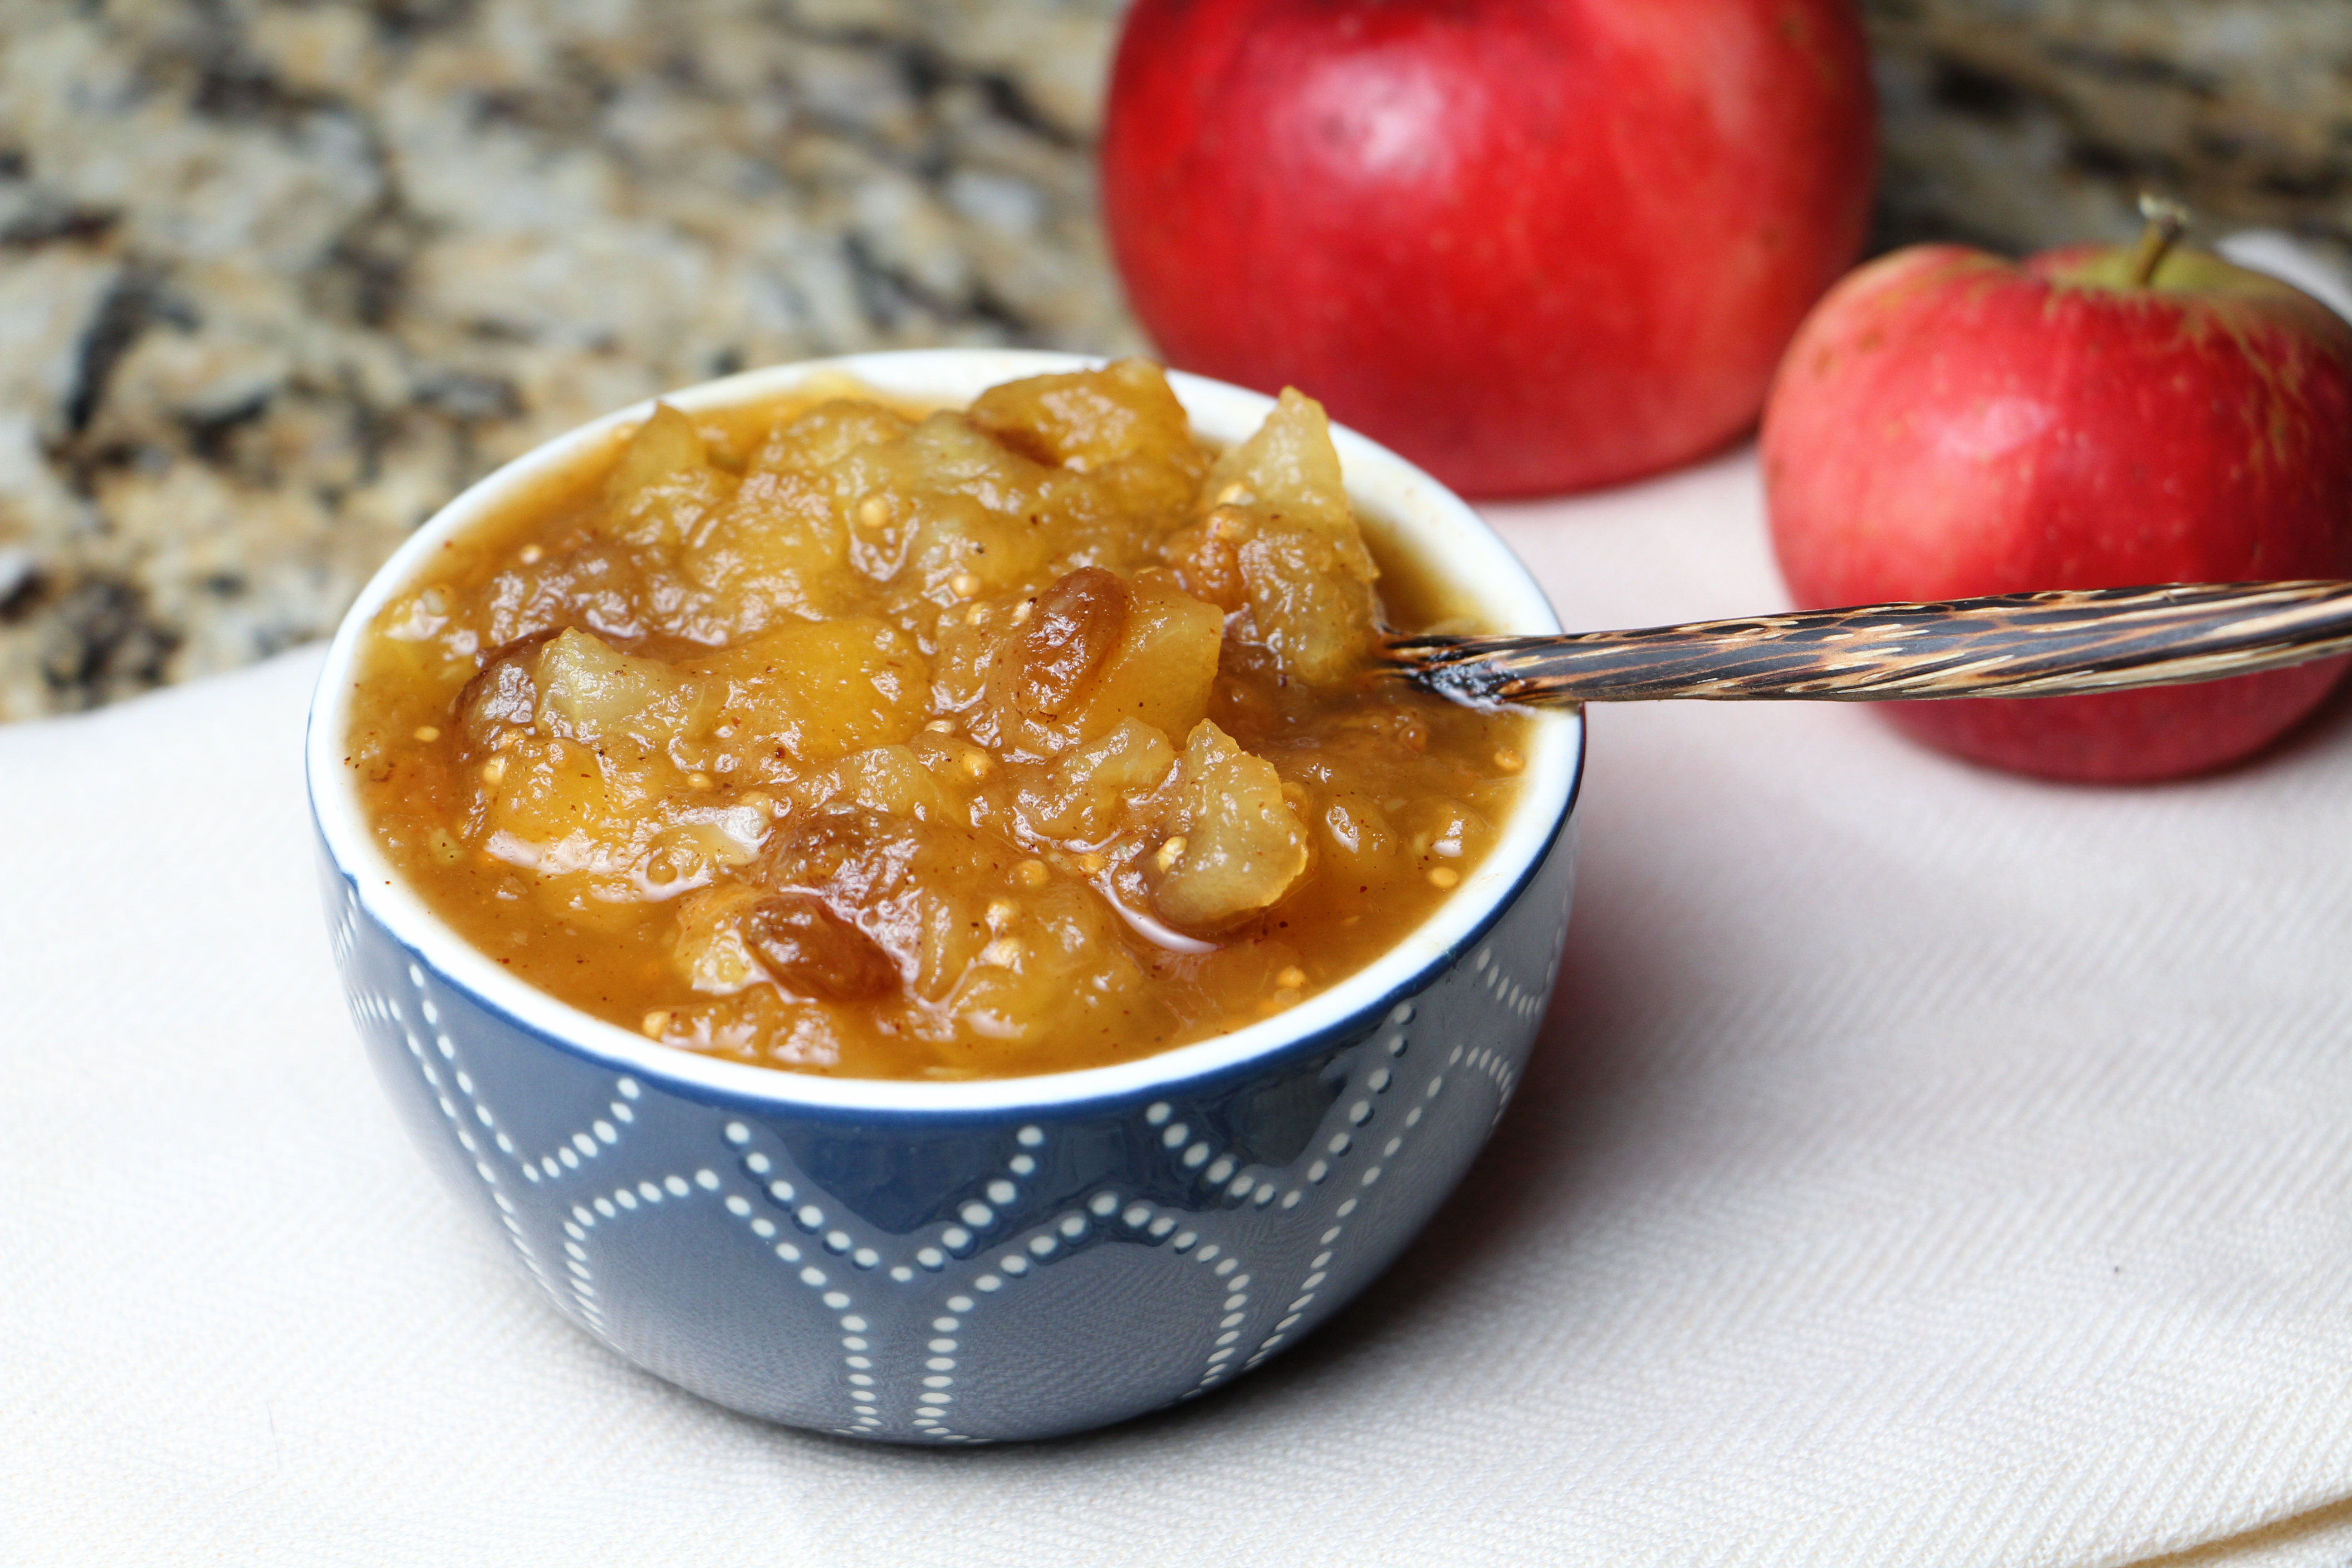 Apple Chutney - Cooking Up Clean